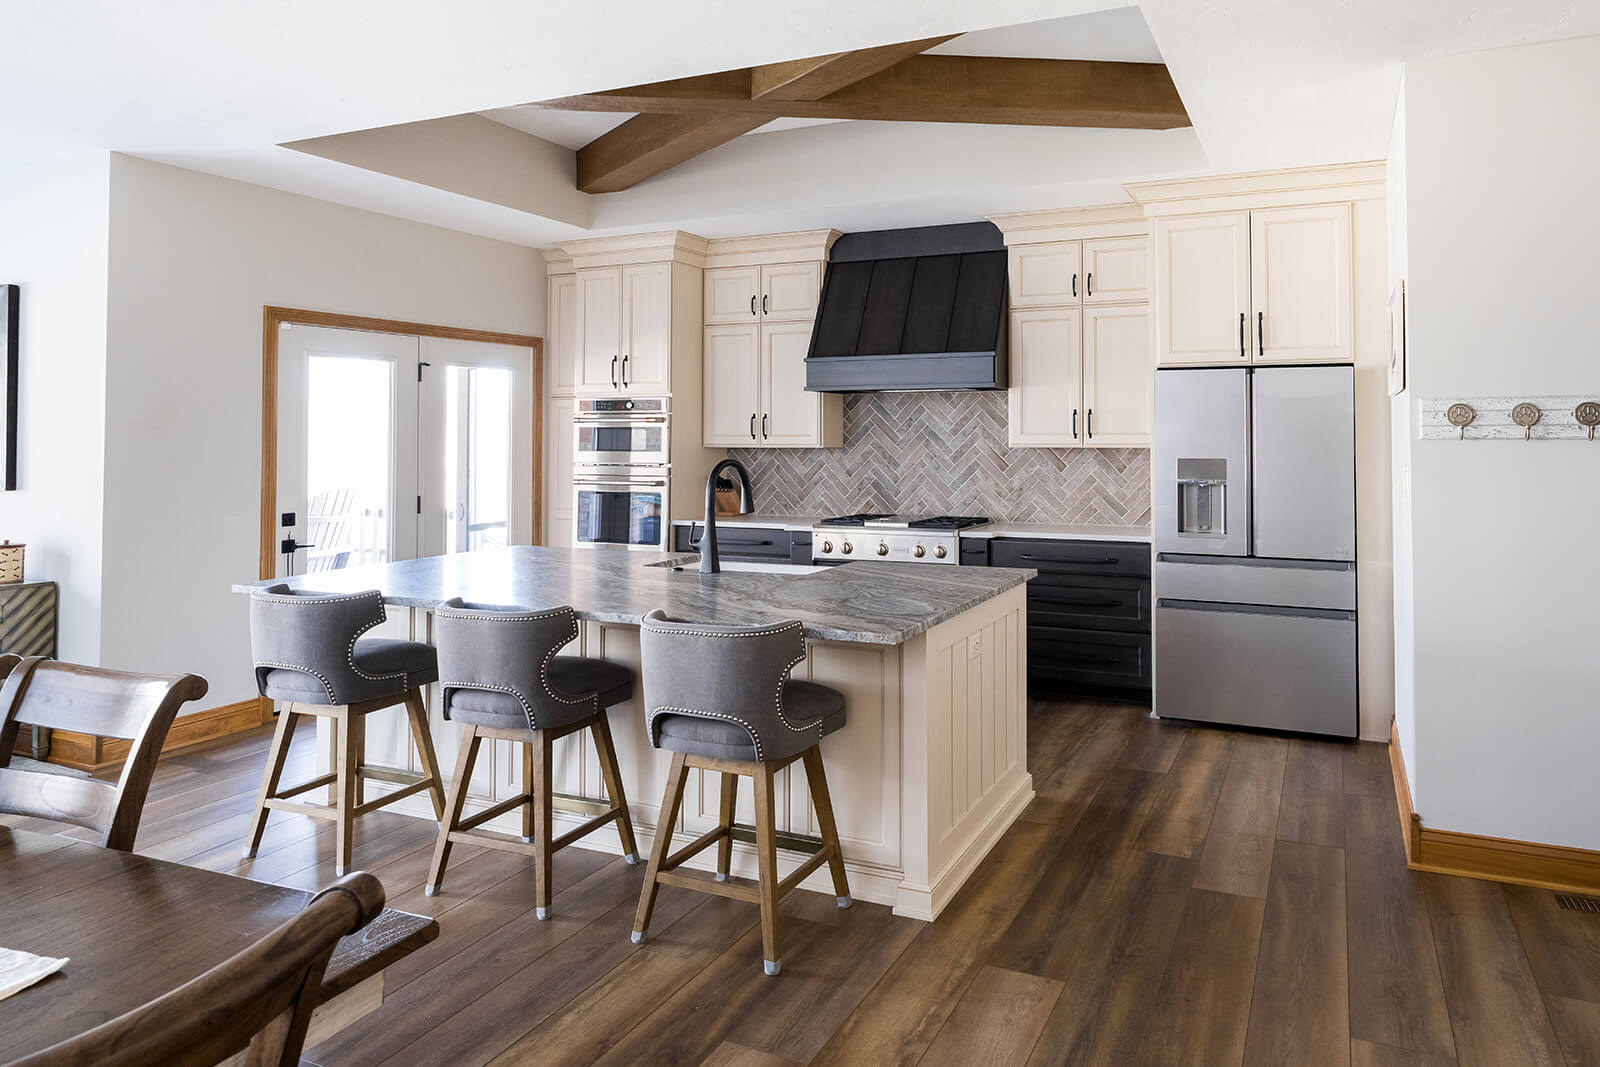 Considerations When Selecting Wood Finishes